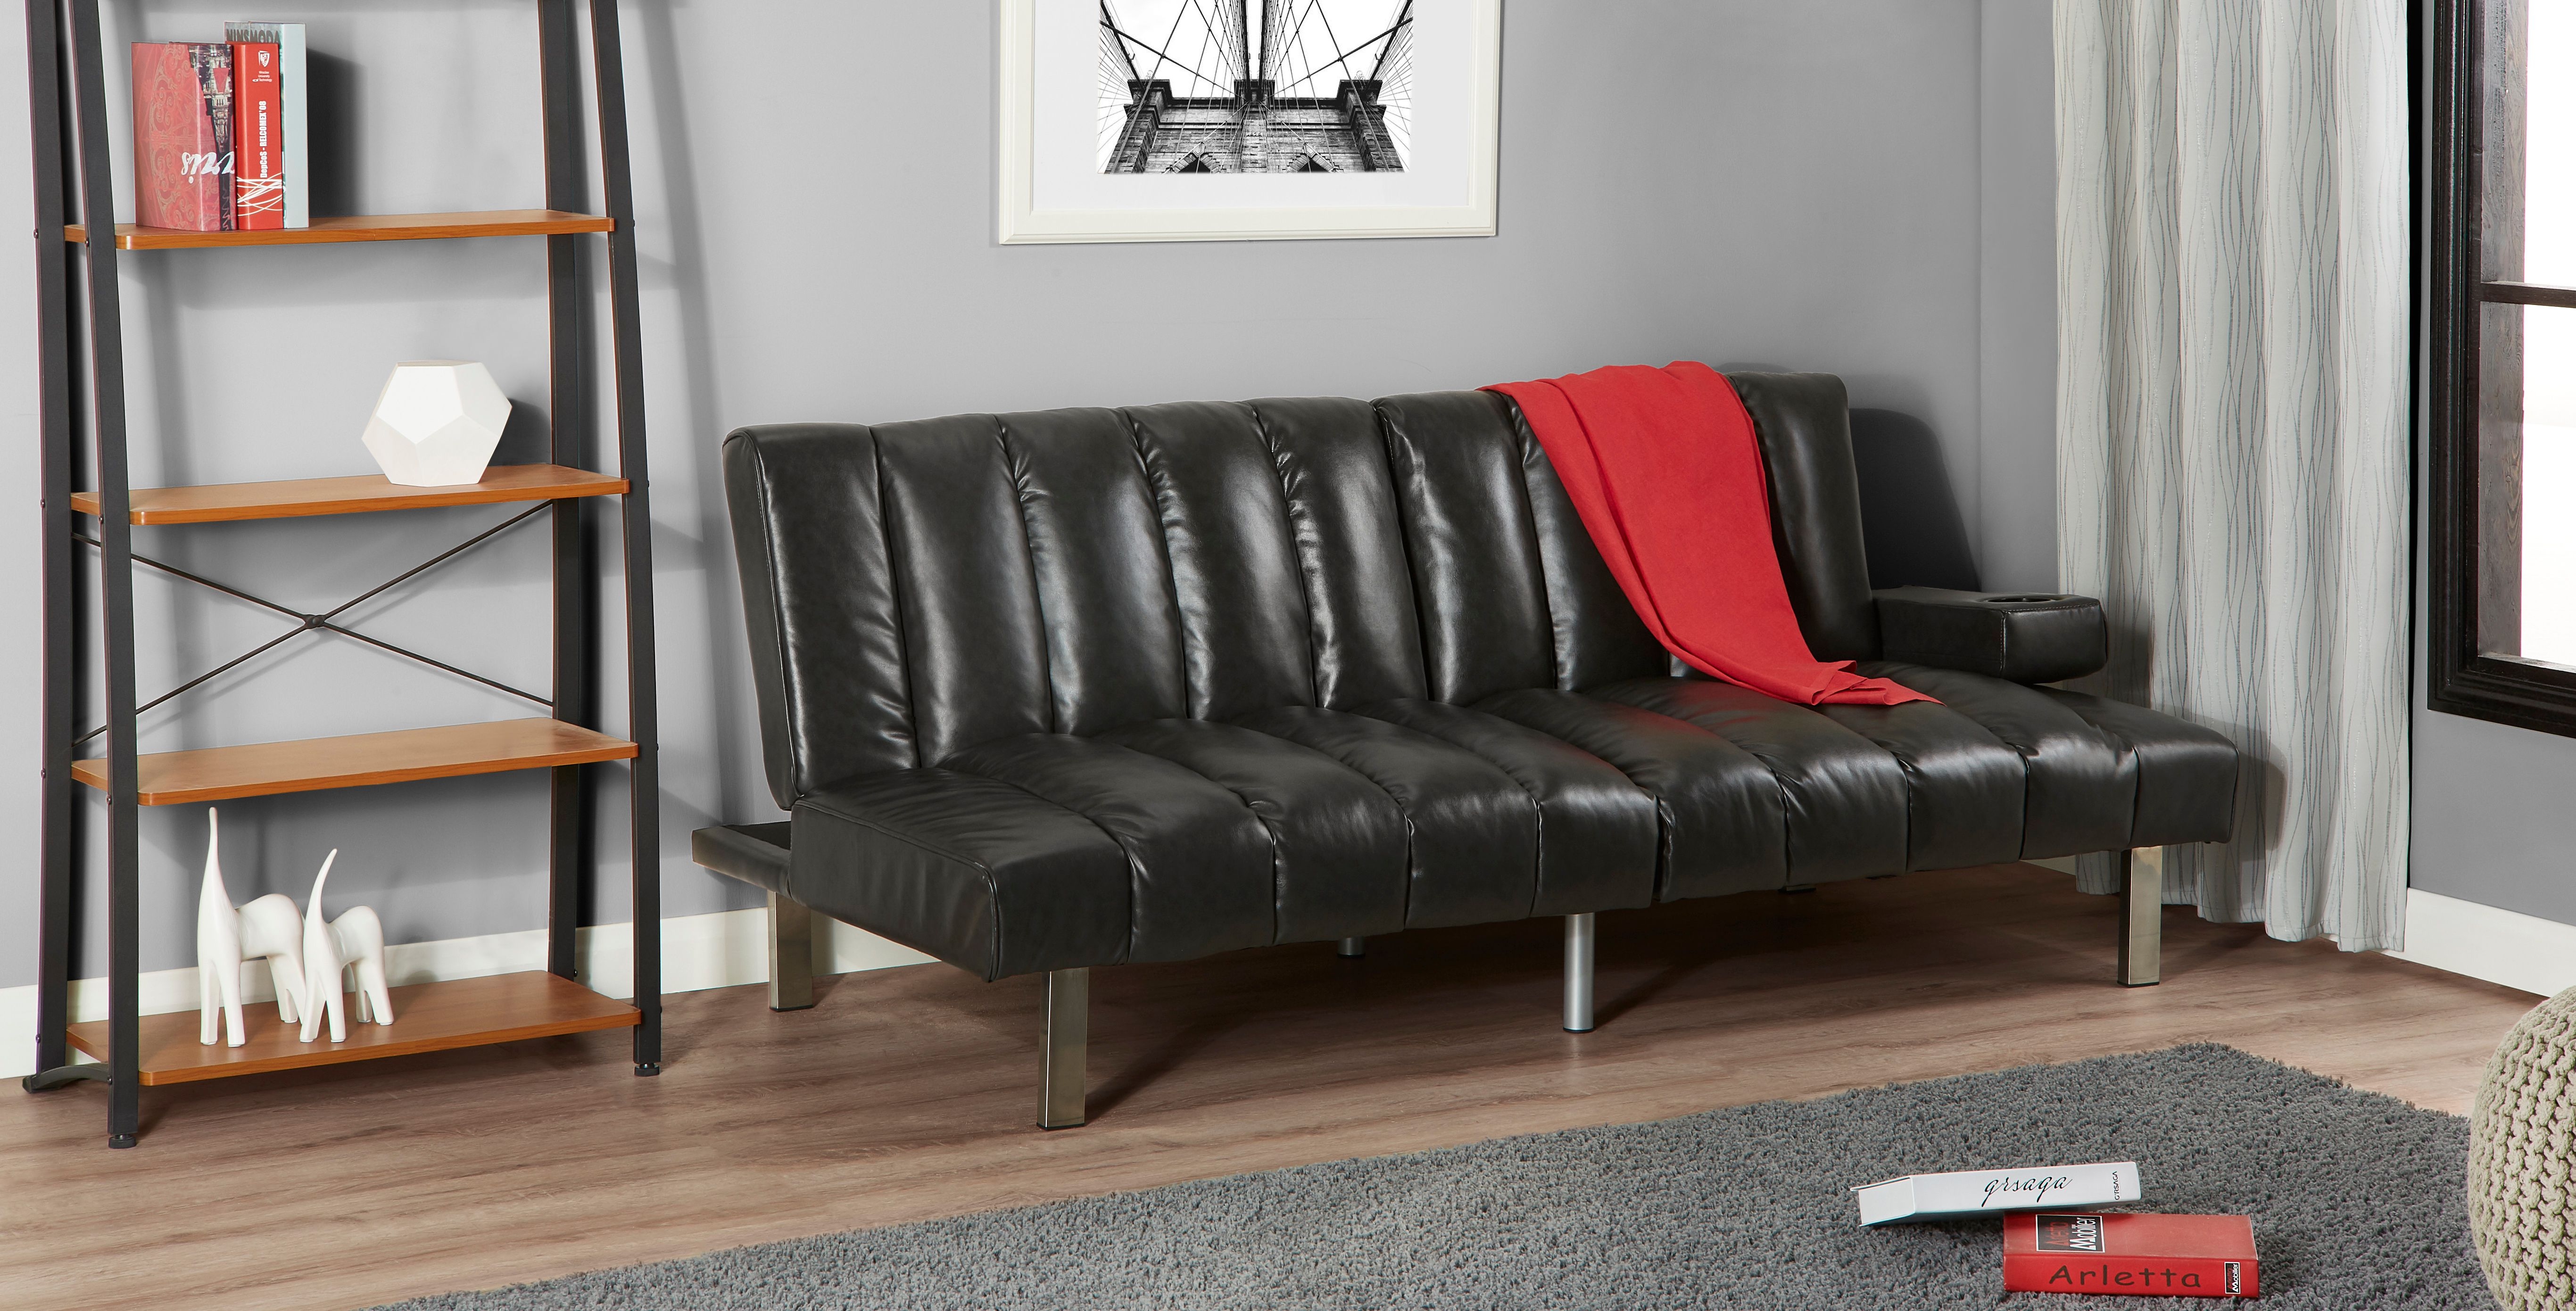 Mainstays Theater Futon Black Adjule Sleeper Sofa Couch Guest Room Furniture